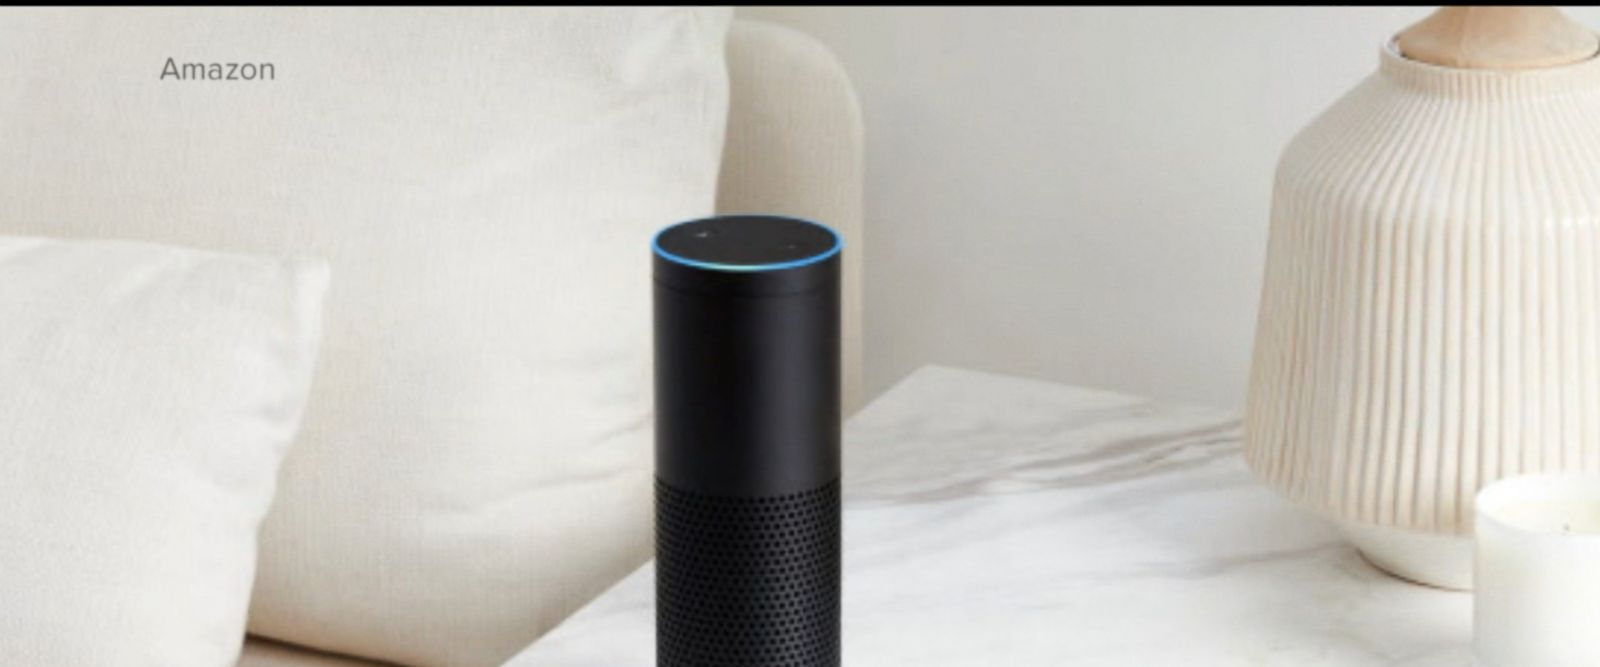 """The company said the Echo had woken up after hearing a word that sounded like """"Alexa."""""""